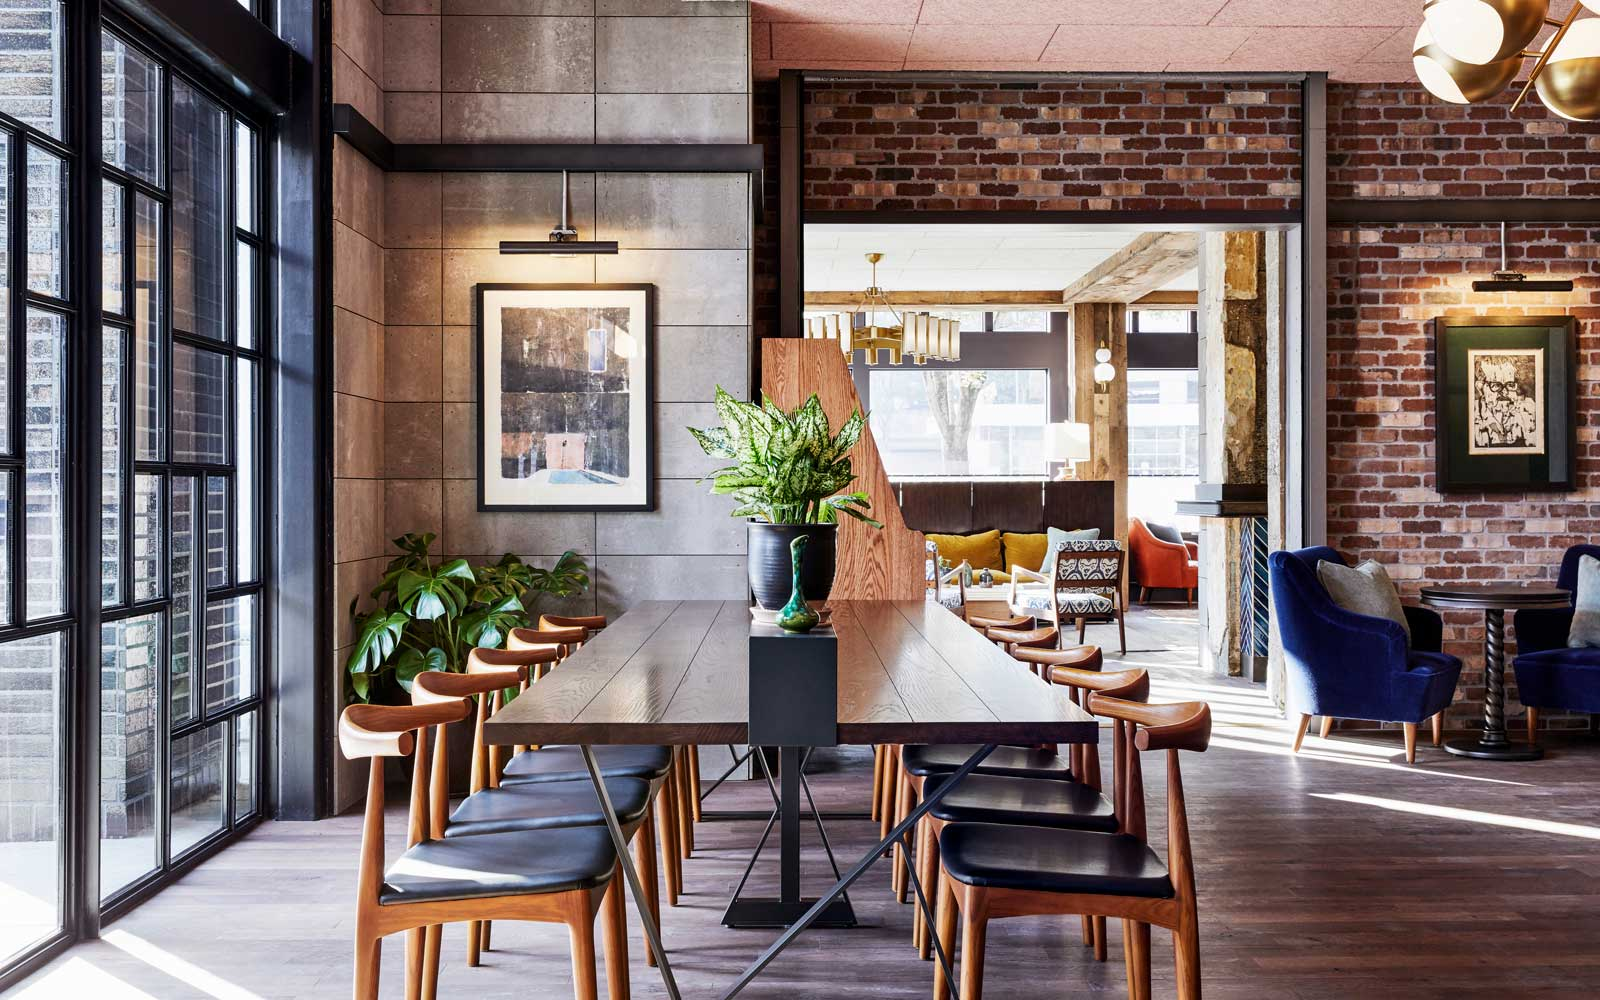 Communal table at Portland's Hoxton Hotel